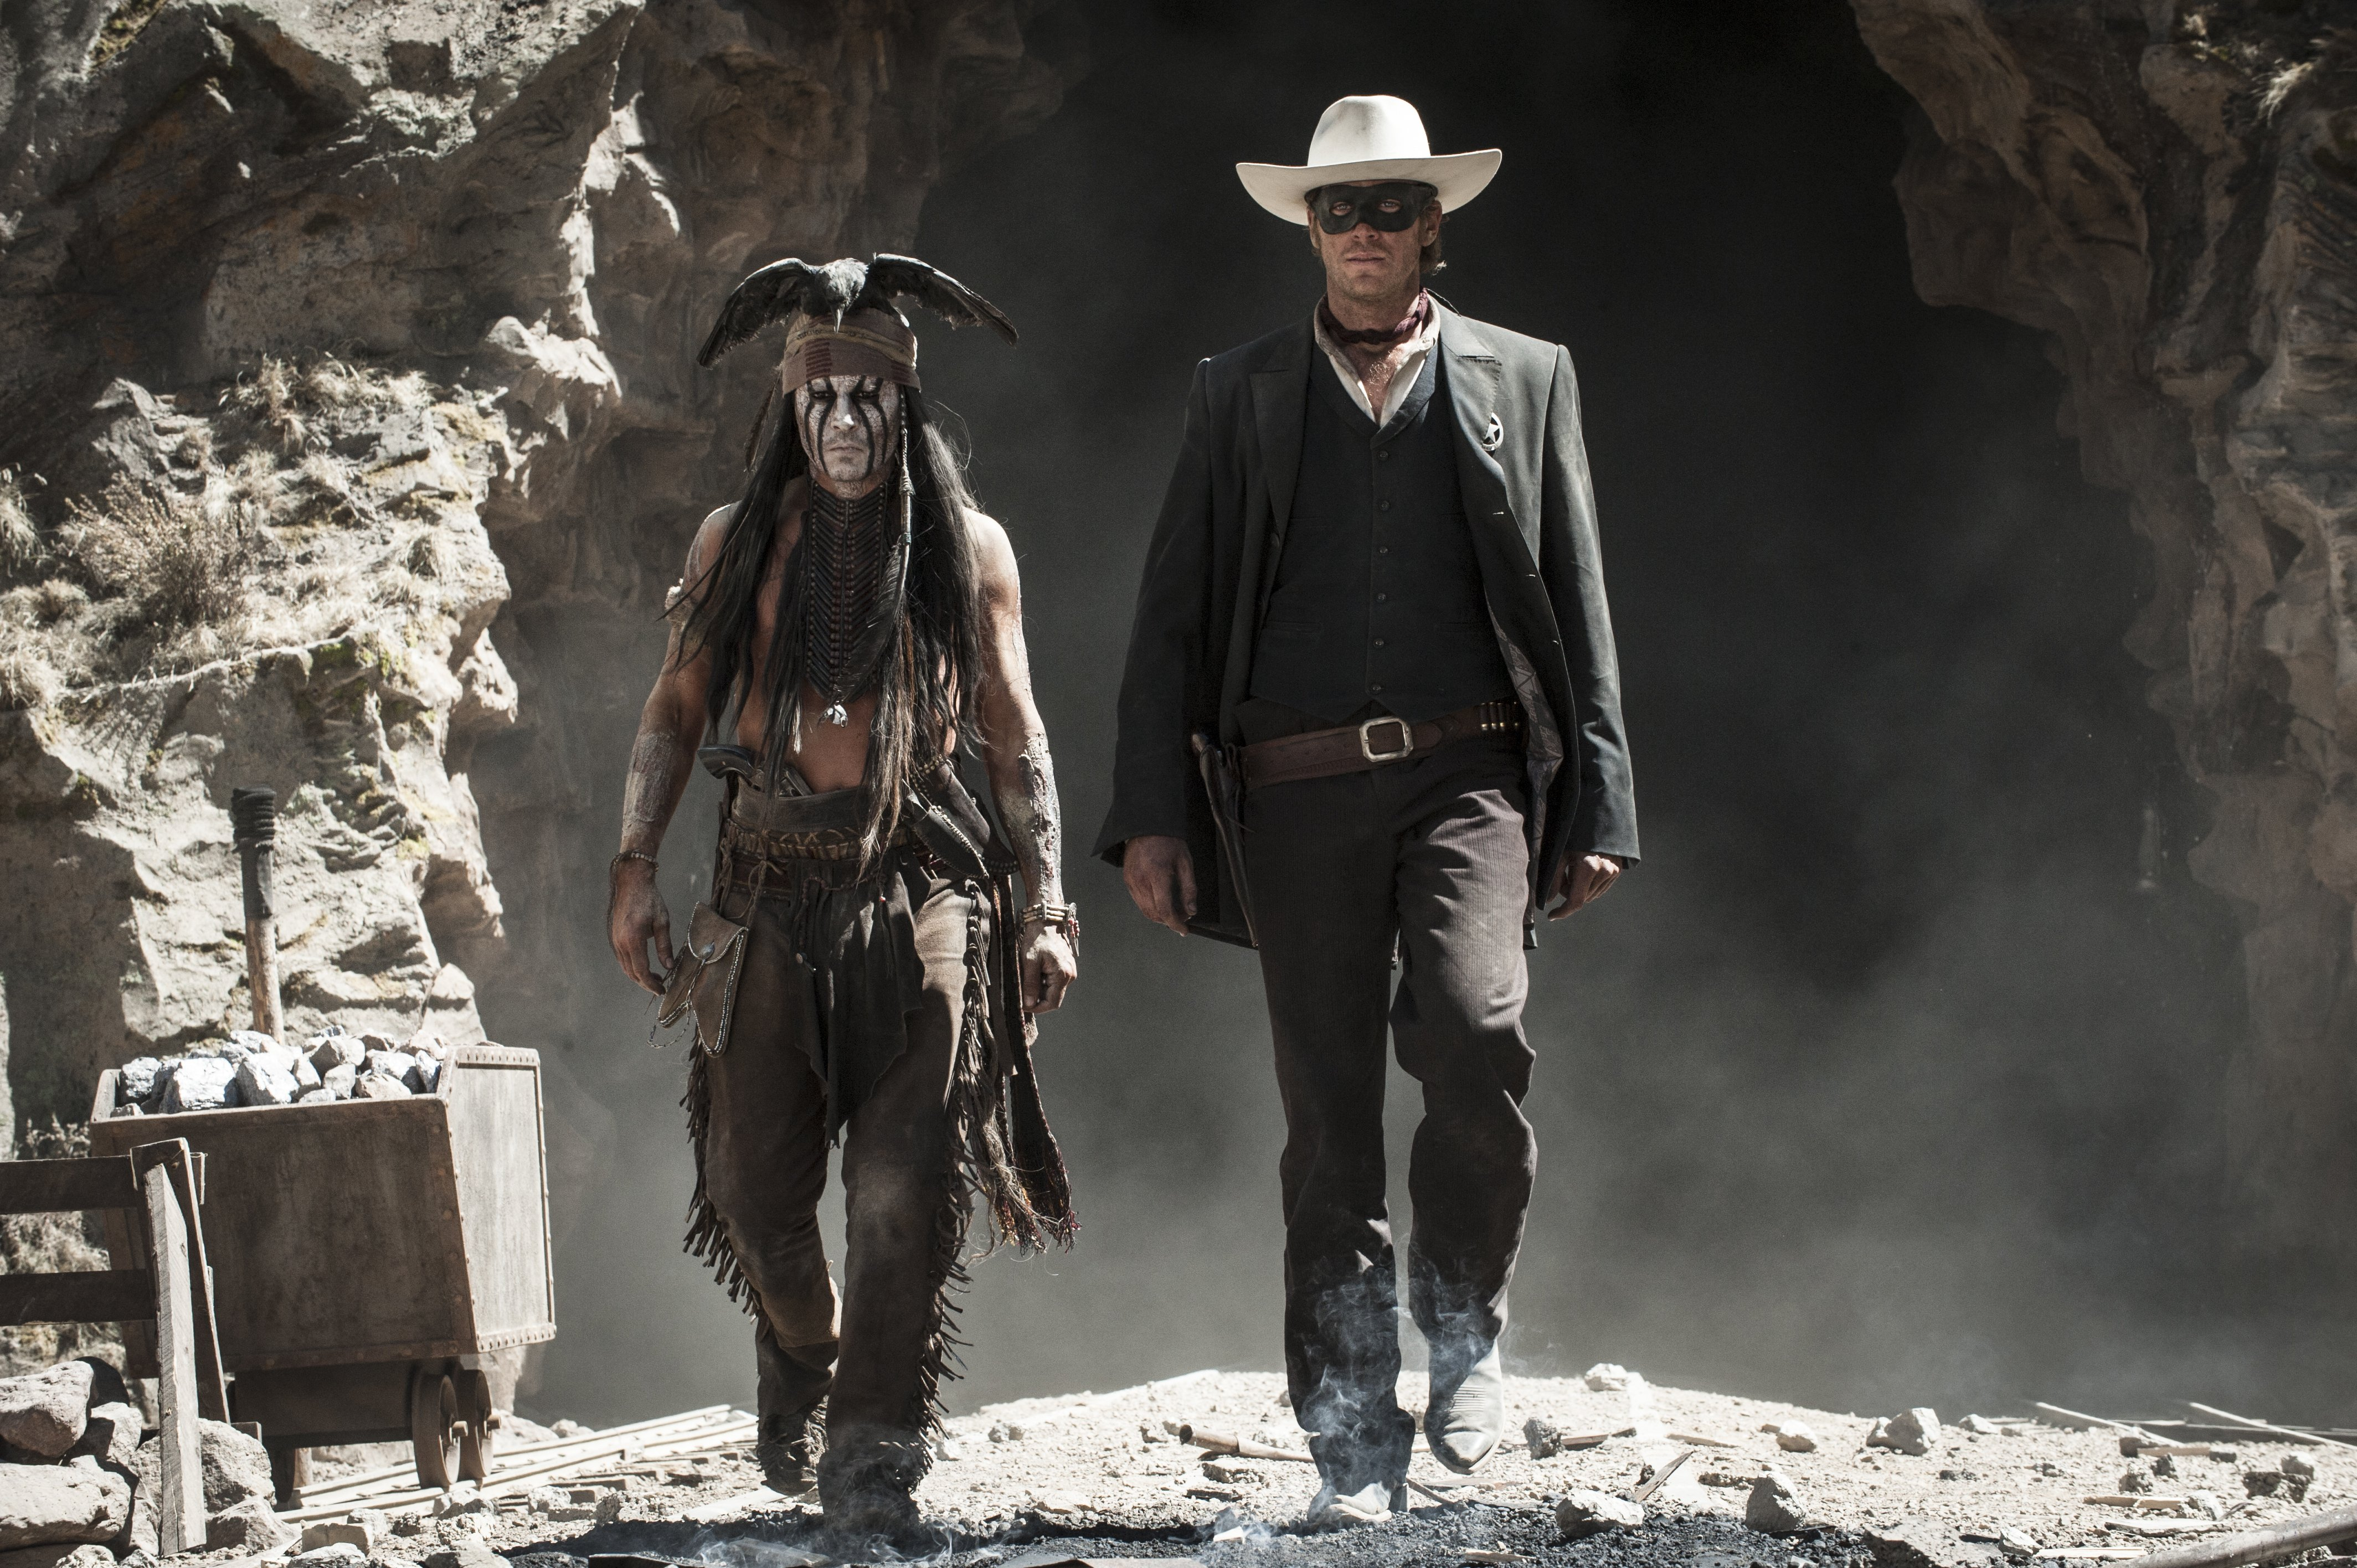 Download Cowboy And Indian Wallpaper Gallery